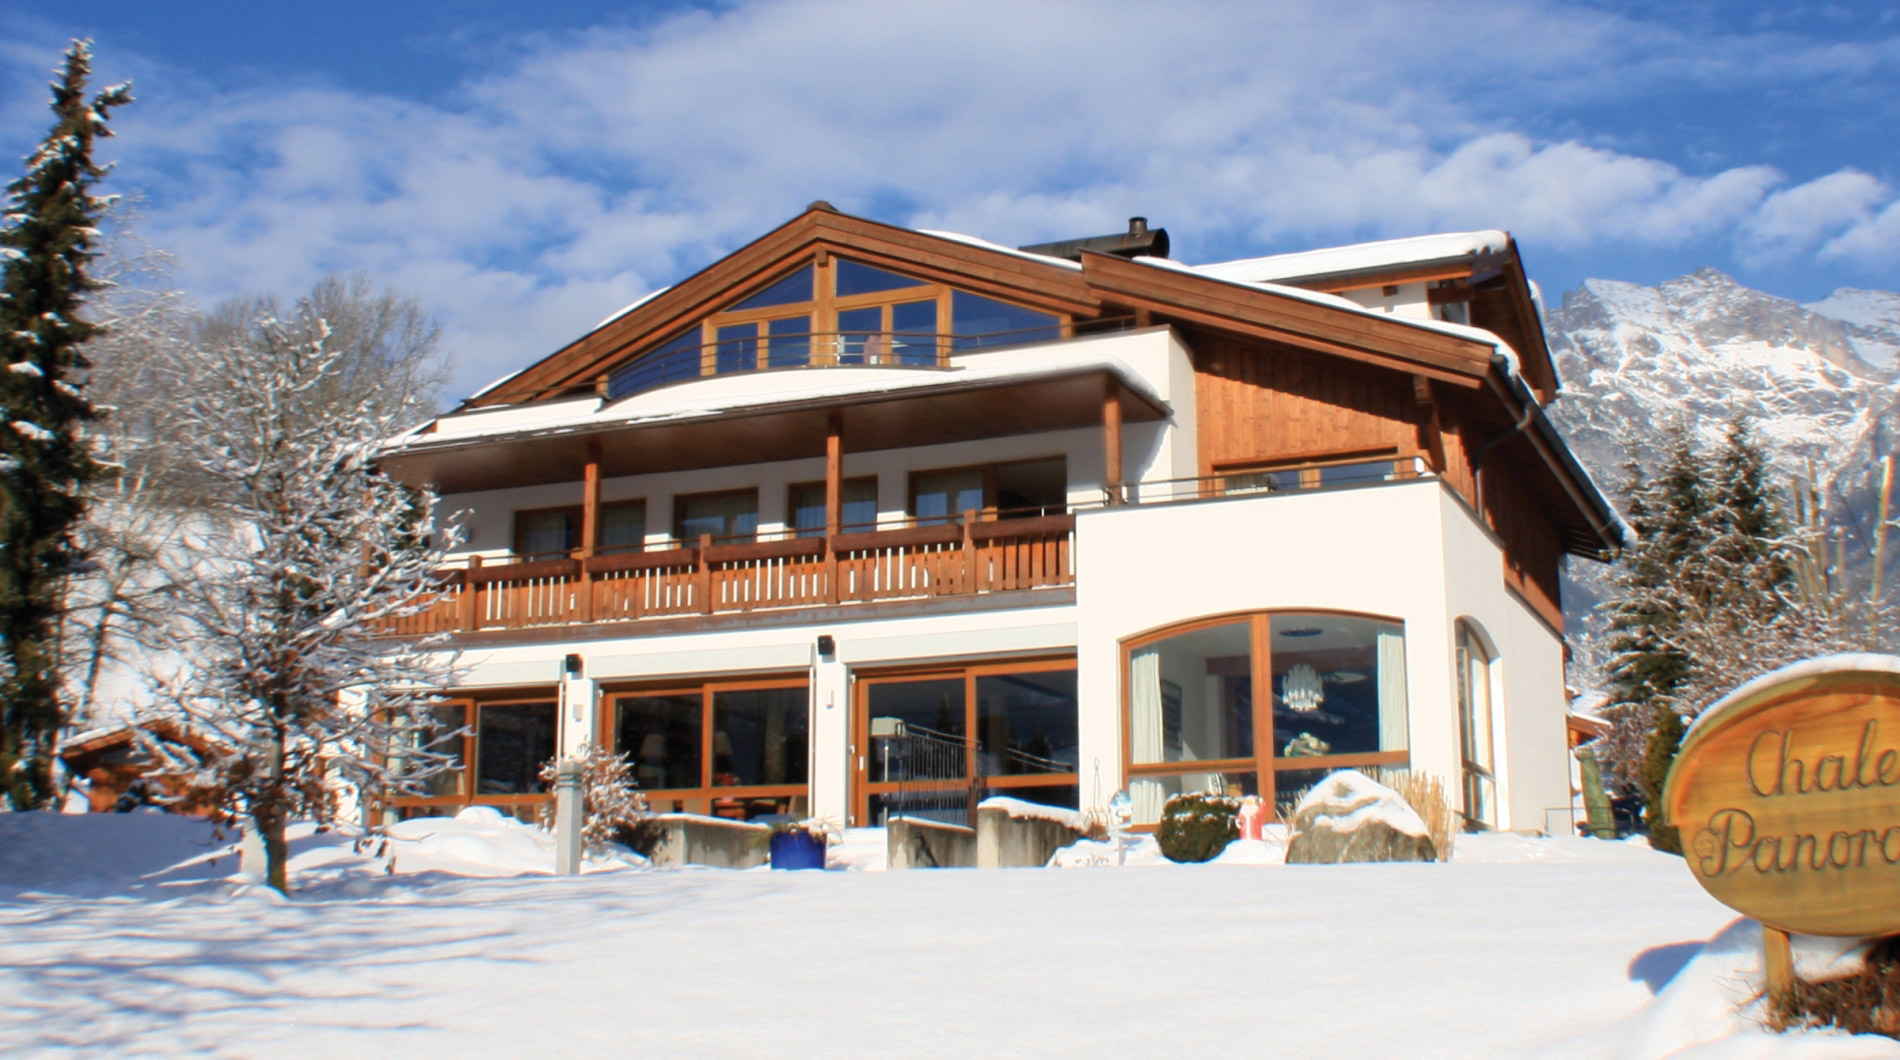 Lovely Luxury Chalet Panorama in Maria Alm in Hochkonig accommodates up to 19